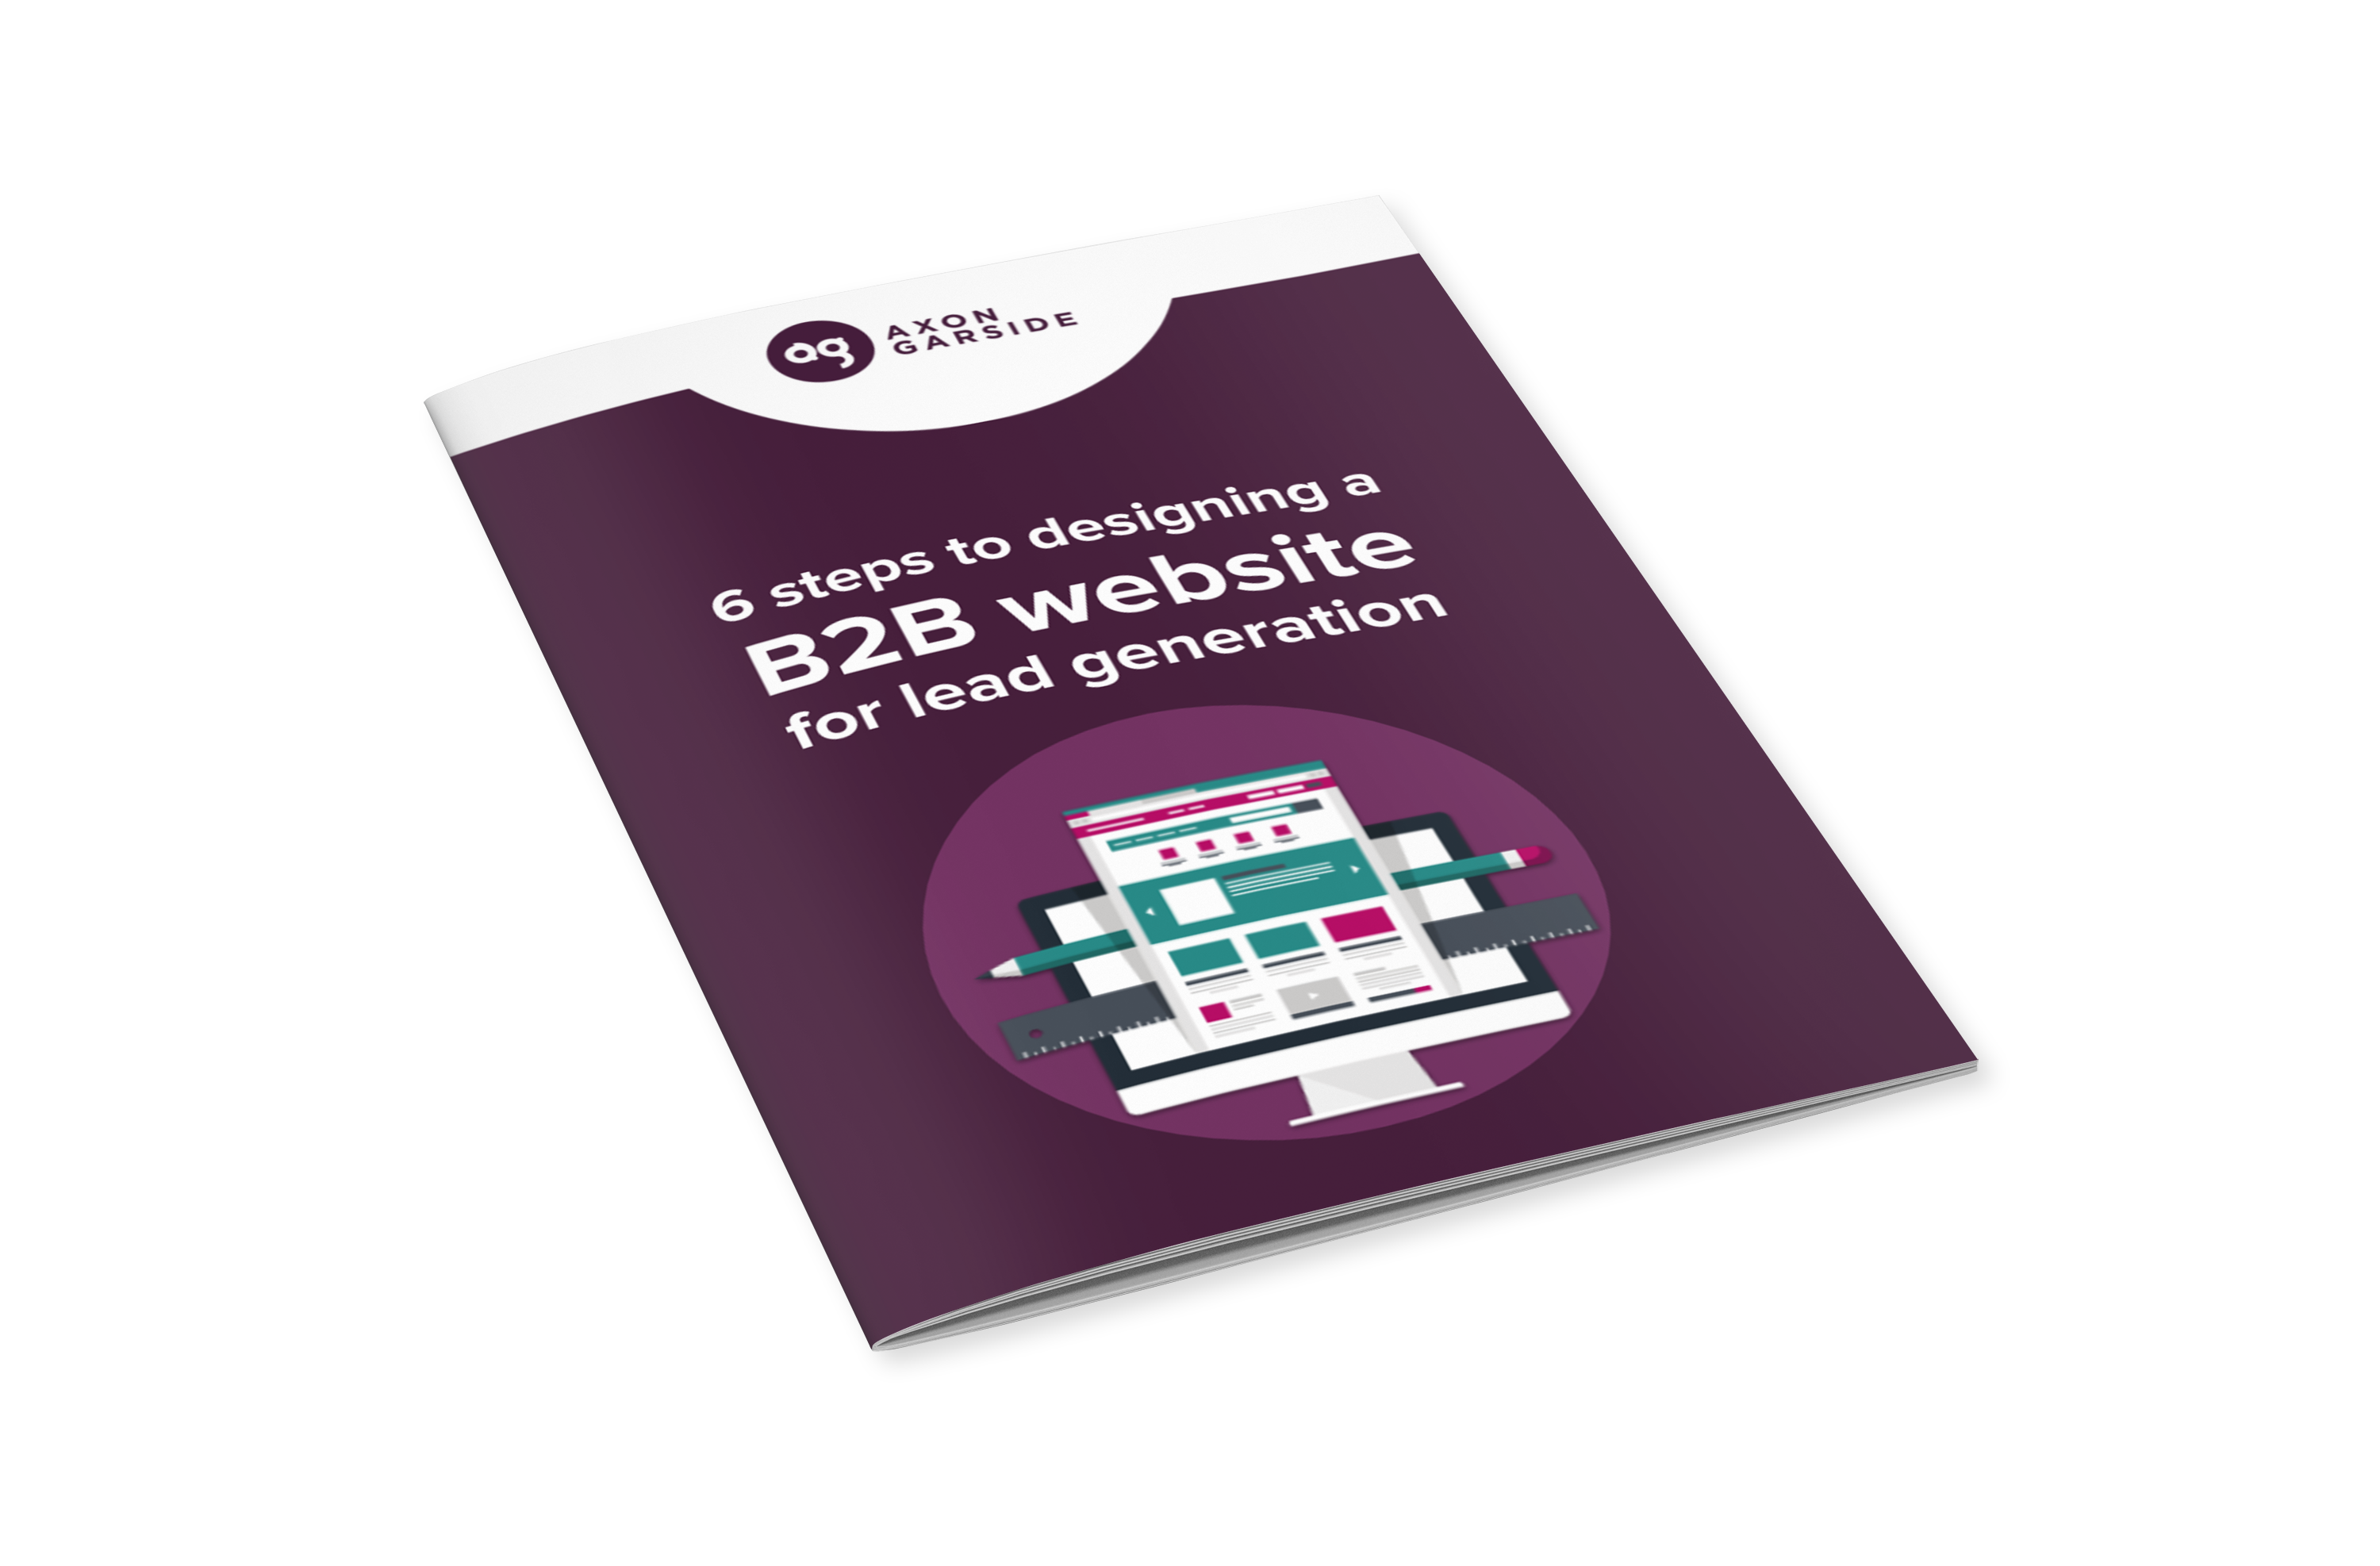 Download the free guide 6 Steps to Designing a B2B Website for Lead Generation